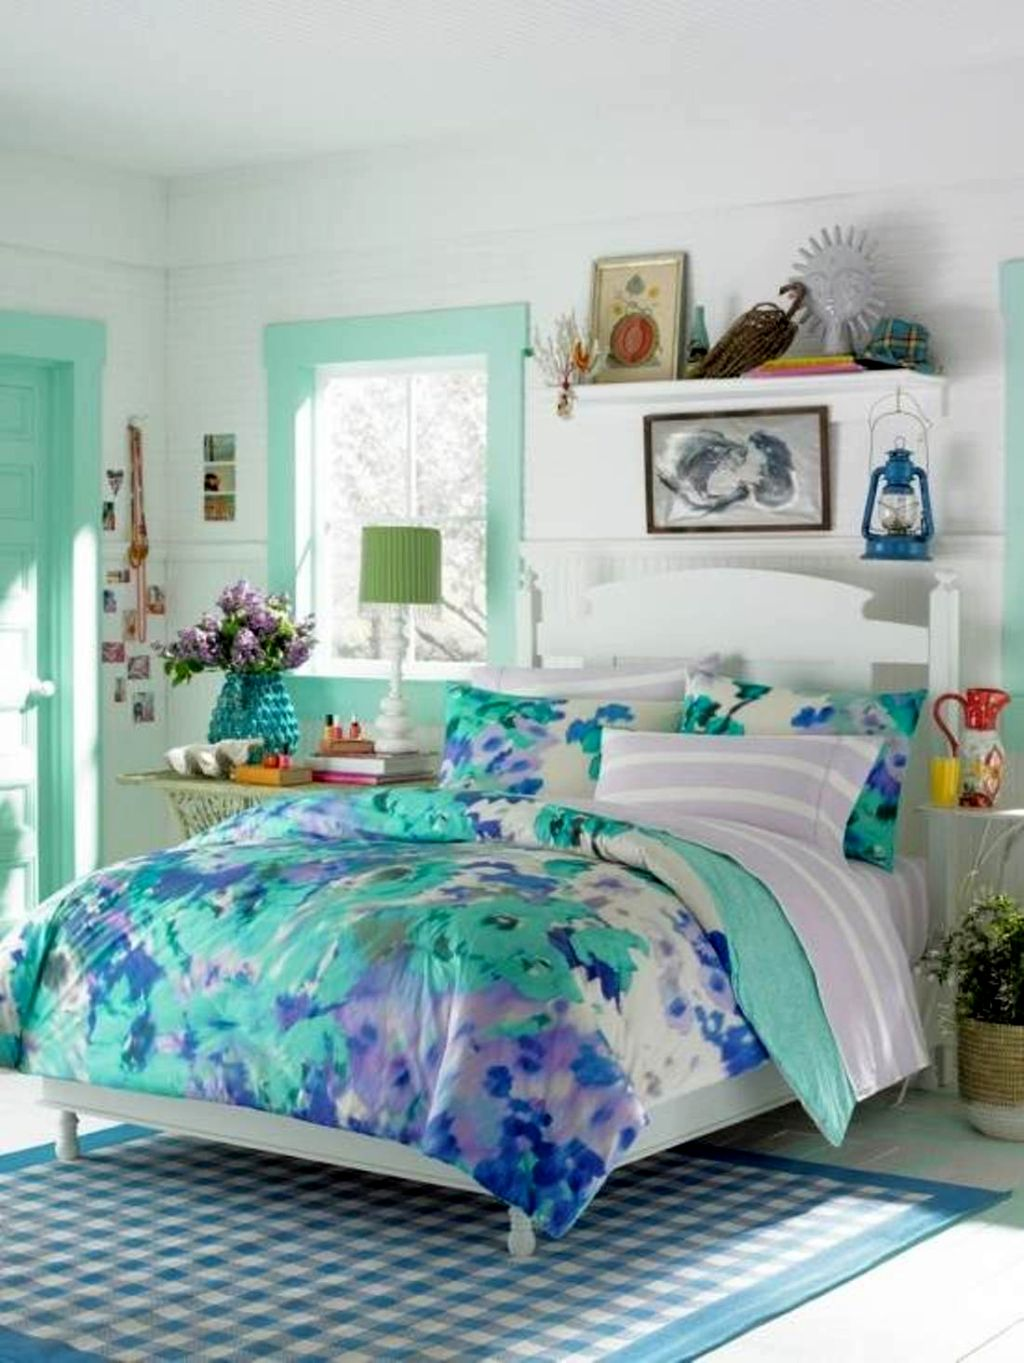 20 pretty girl bedrooms for your little princesses - Bed for girls room ...